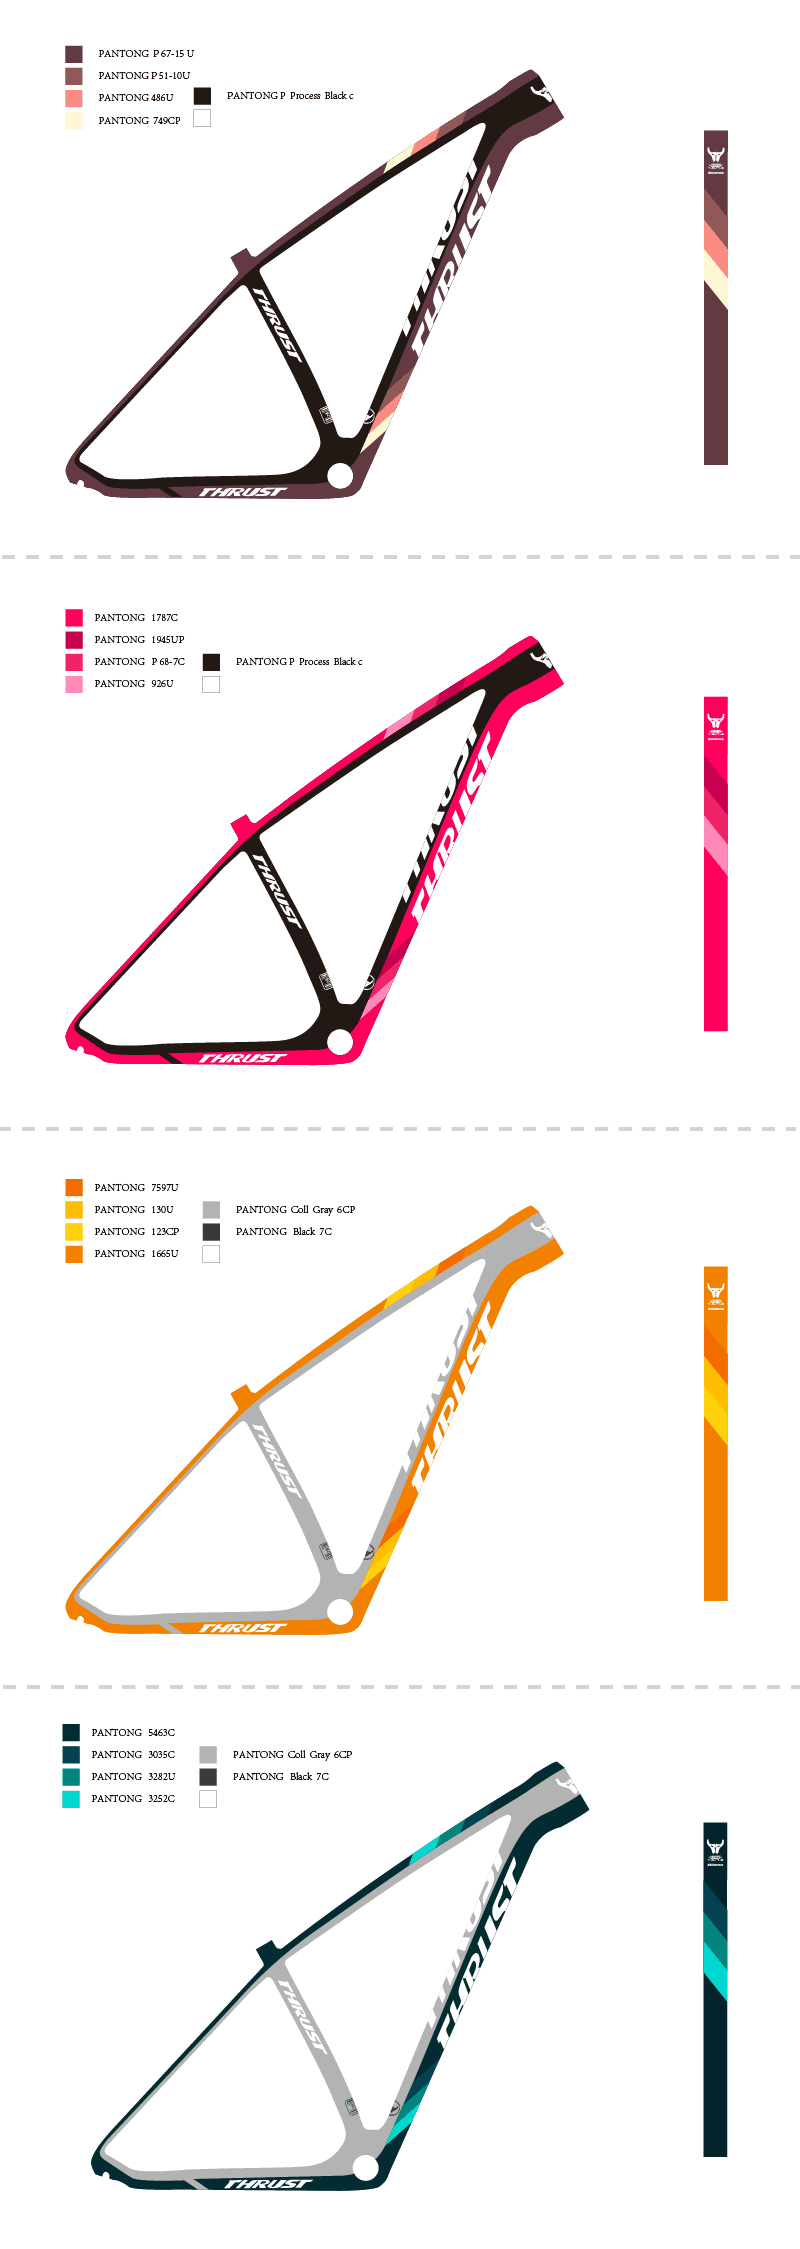 2018 New design MTB bike Carbon bicycle Frame 27.5er 29er 15/17/19 inch design.